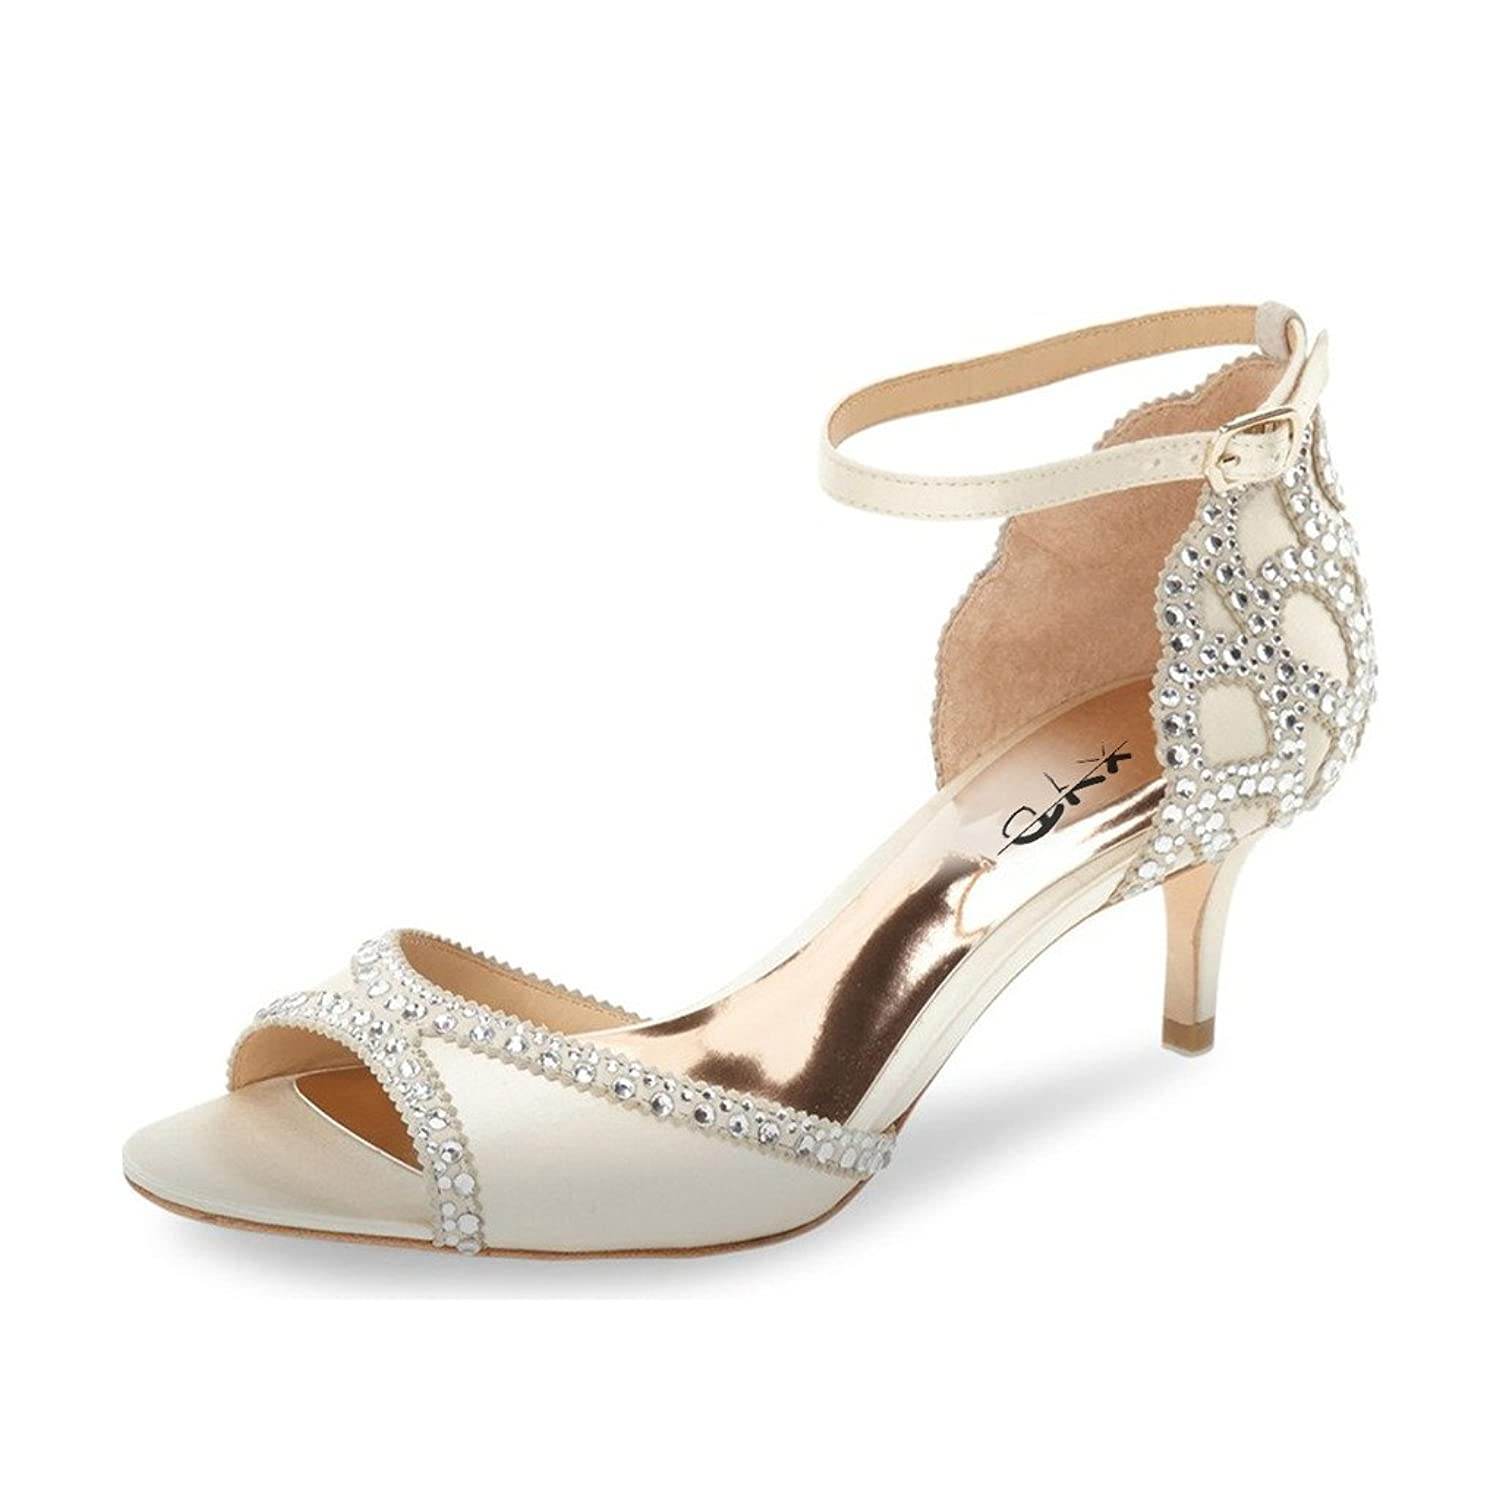 a0be0190d40b best XYD Ballroom Dance Shoes Wedding Sandals Pumps with Rhinestones Ankle  Strap Peep Toe Heels for